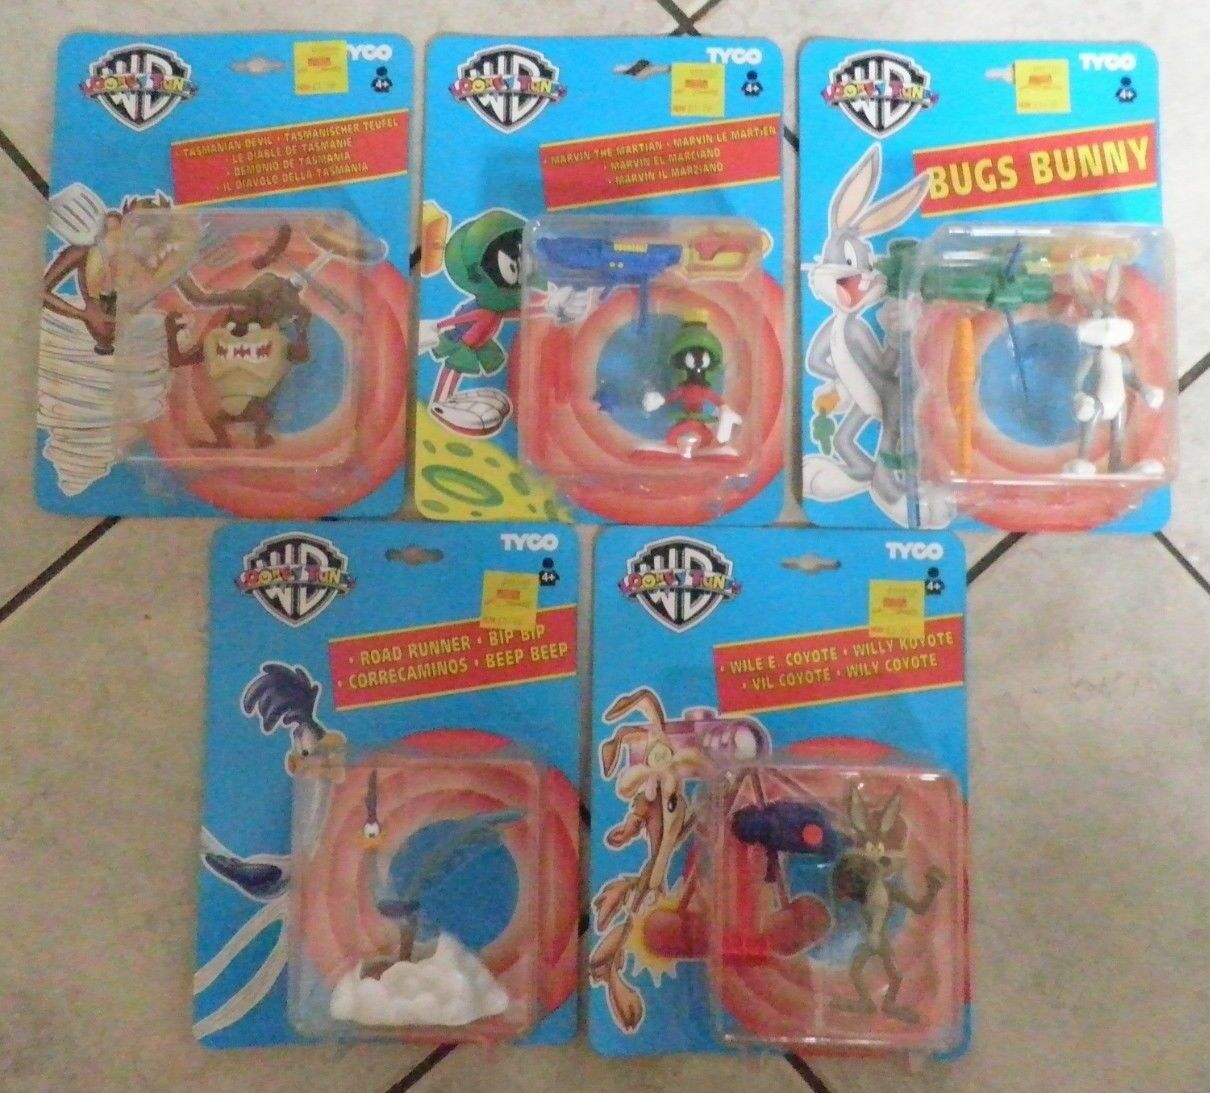 LOONEY TUNES Warner Brothers Tyco Tyco Tyco Set of 5 Characters 1994 preowned mint on card b73513